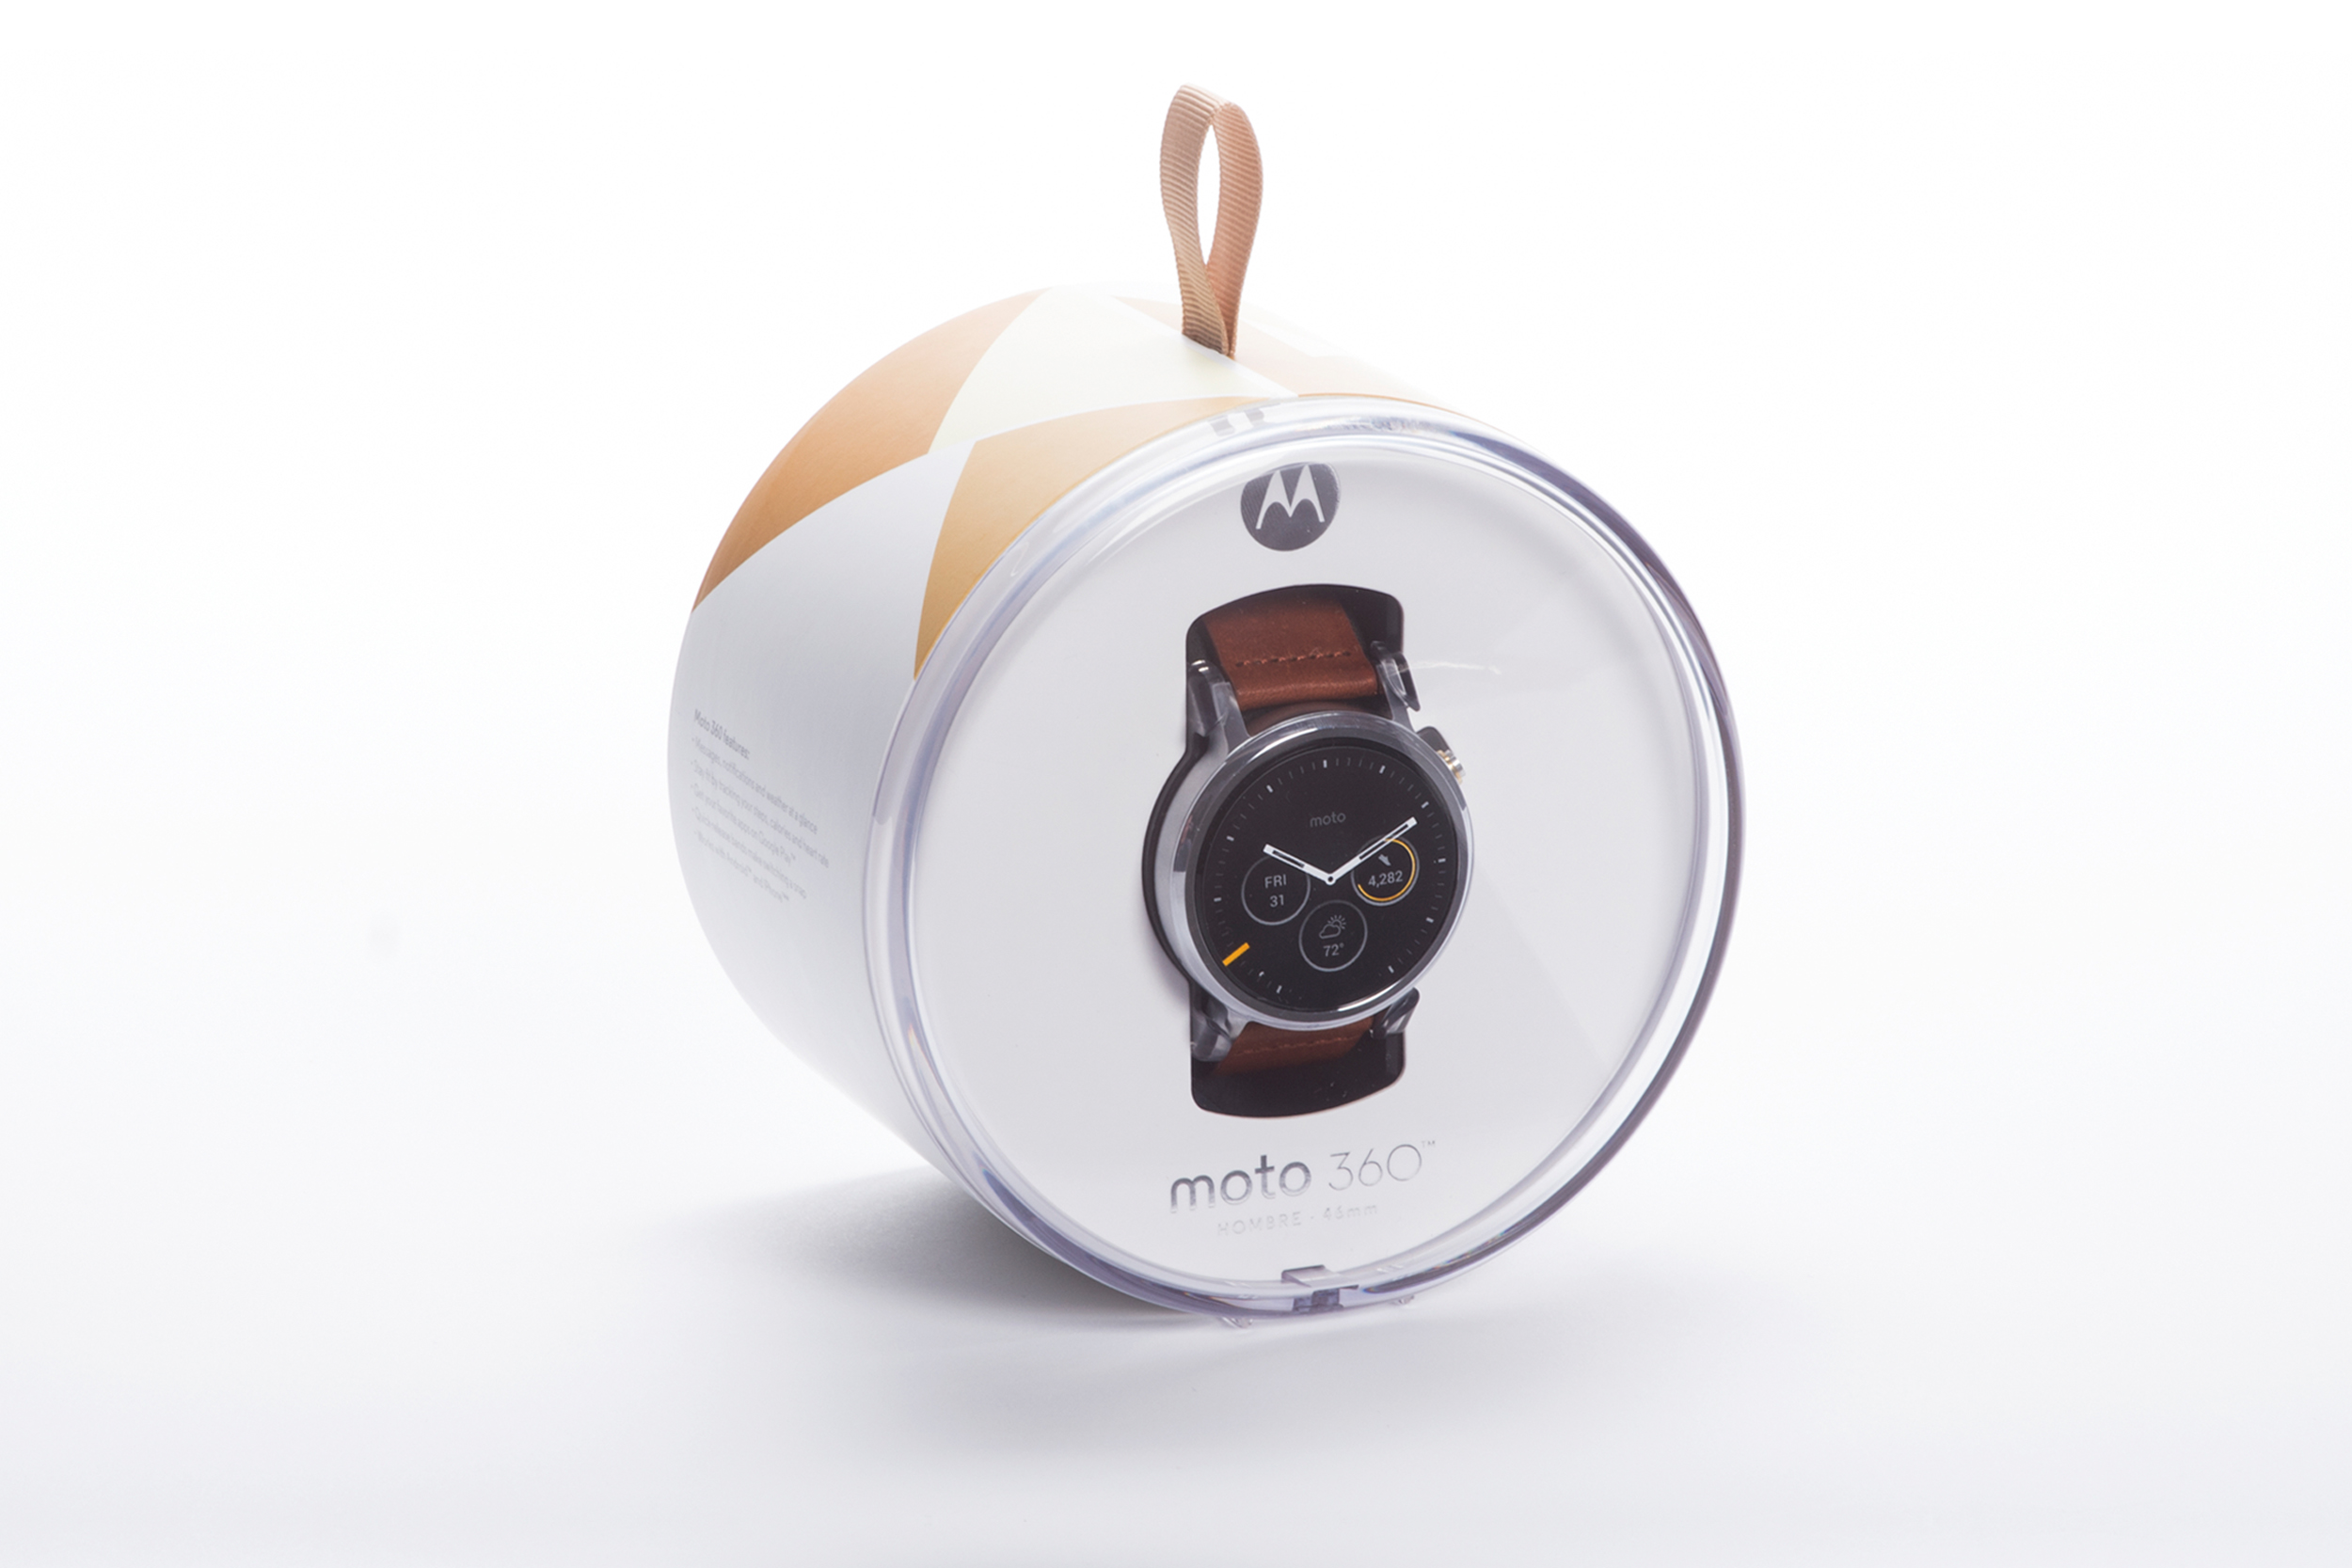 Motorola Moto 360 2nd Gen  |  Packaging Structure Design